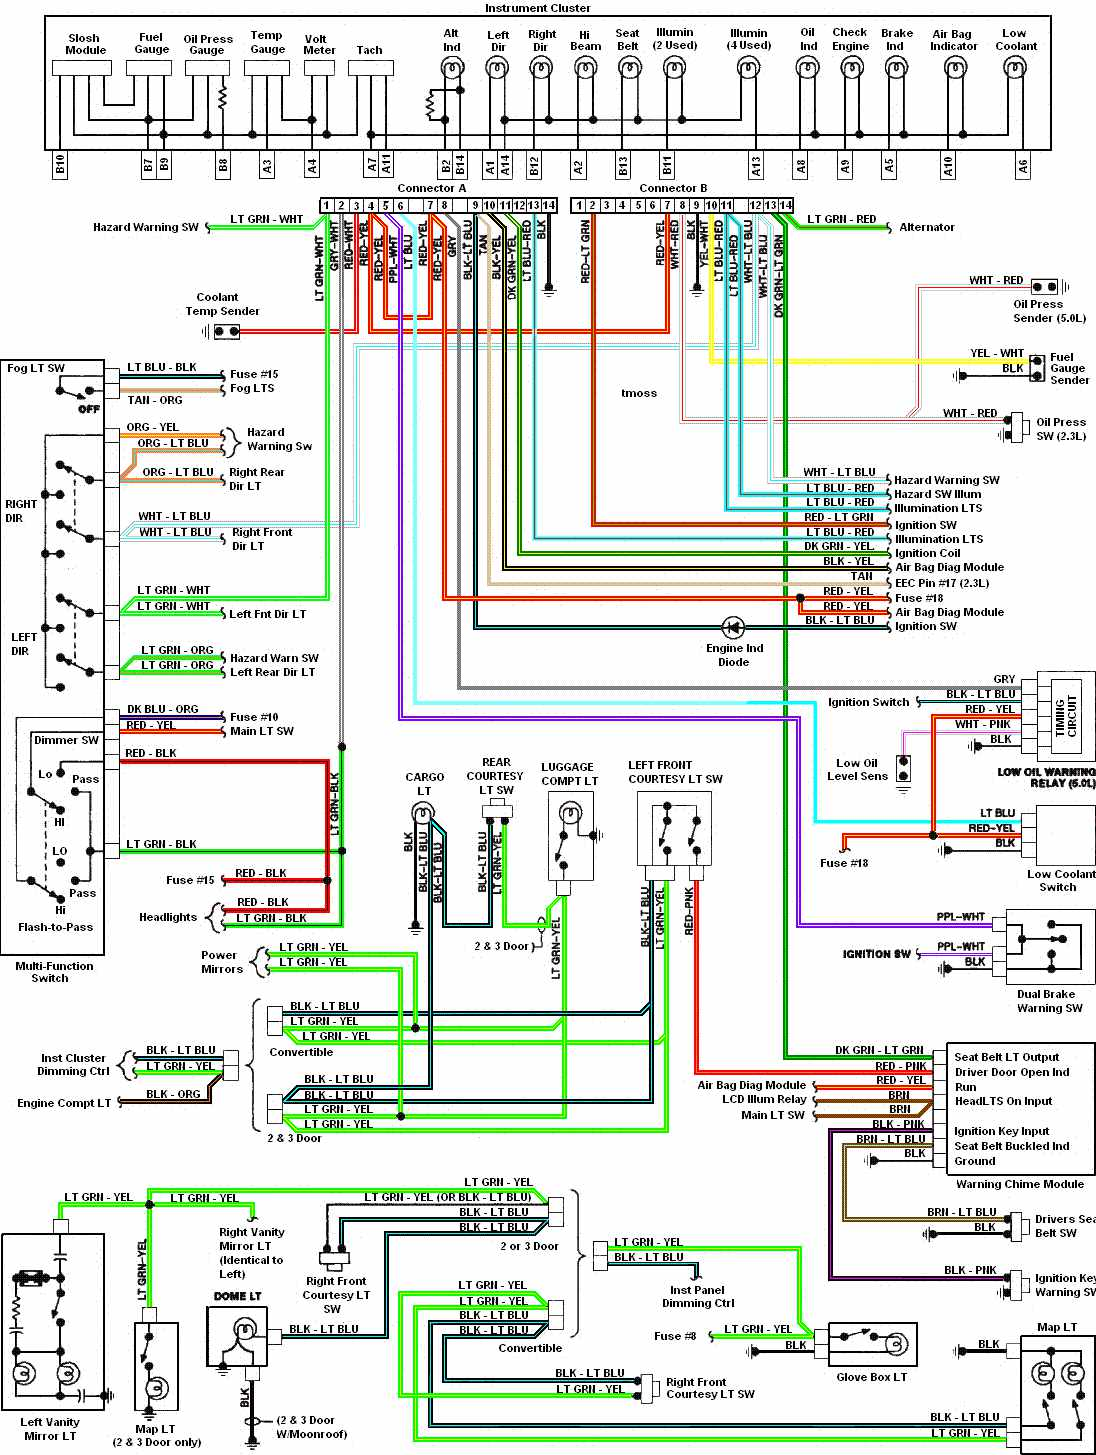 01 Mustang Wire Diagram - Wiring Diagram G11 on 99 mustang radio wiring diagram, 2002 mustang radio wiring diagram, 2001 mustang radio wiring diagram, 95 mustang radio wiring diagram, 92 mustang radio wiring diagram, 89 mustang radio wiring diagram, 98 mustang radio wiring diagram,